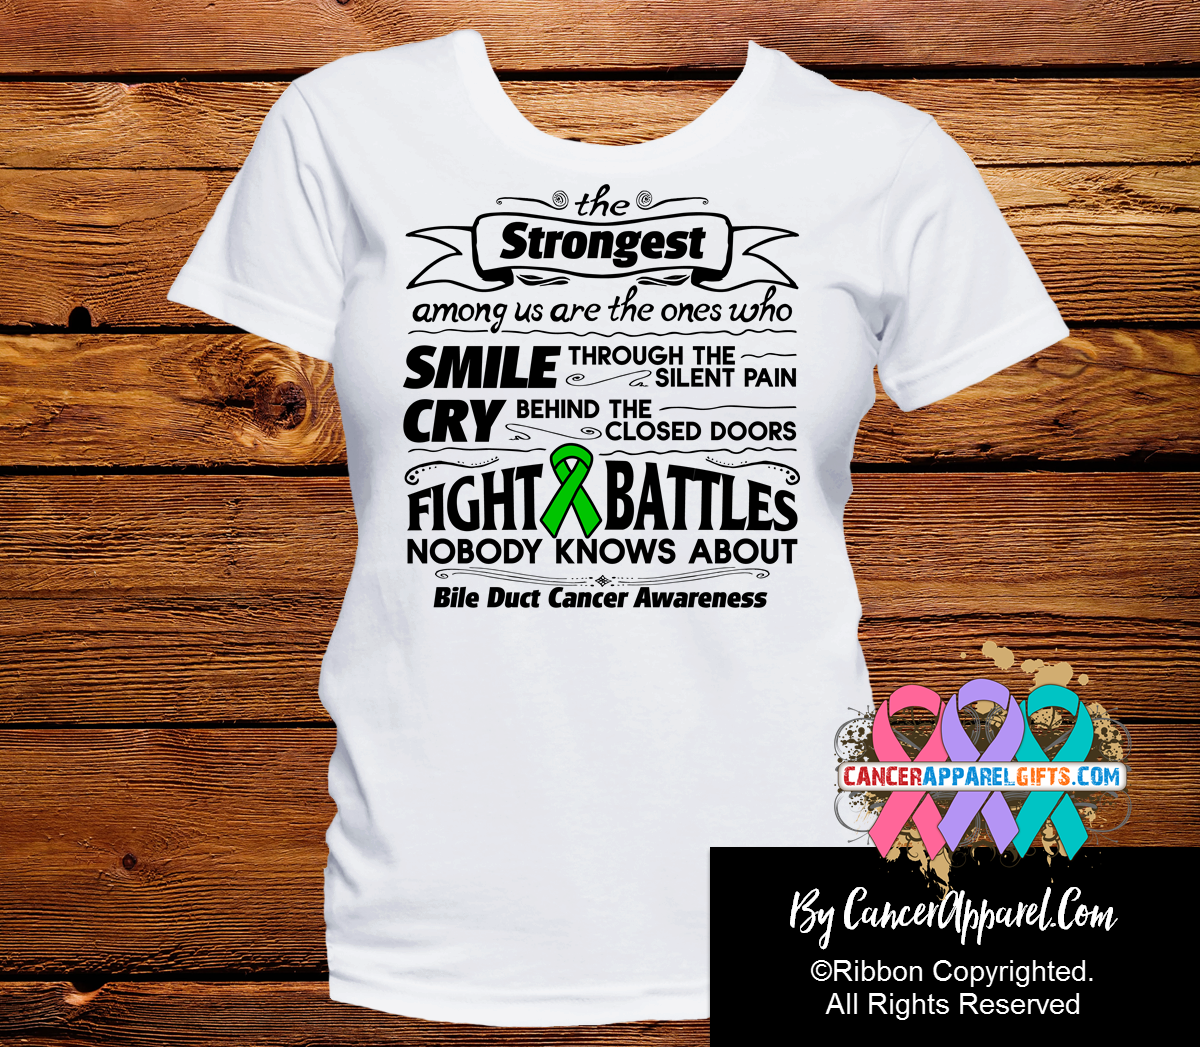 Bile Duct Cancer The Strongest Among Us Shirts - Cancer Apparel and Gifts